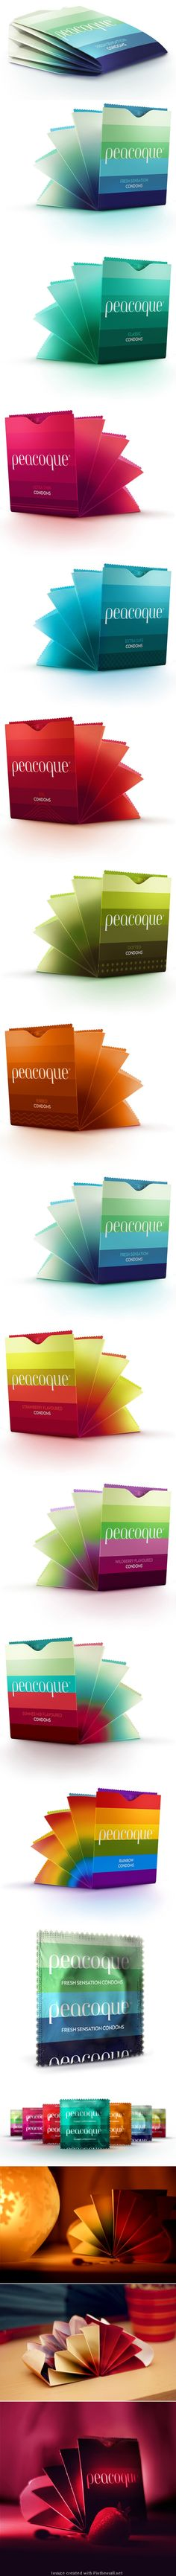 Peacoque - Innovative Condom Packaging PD